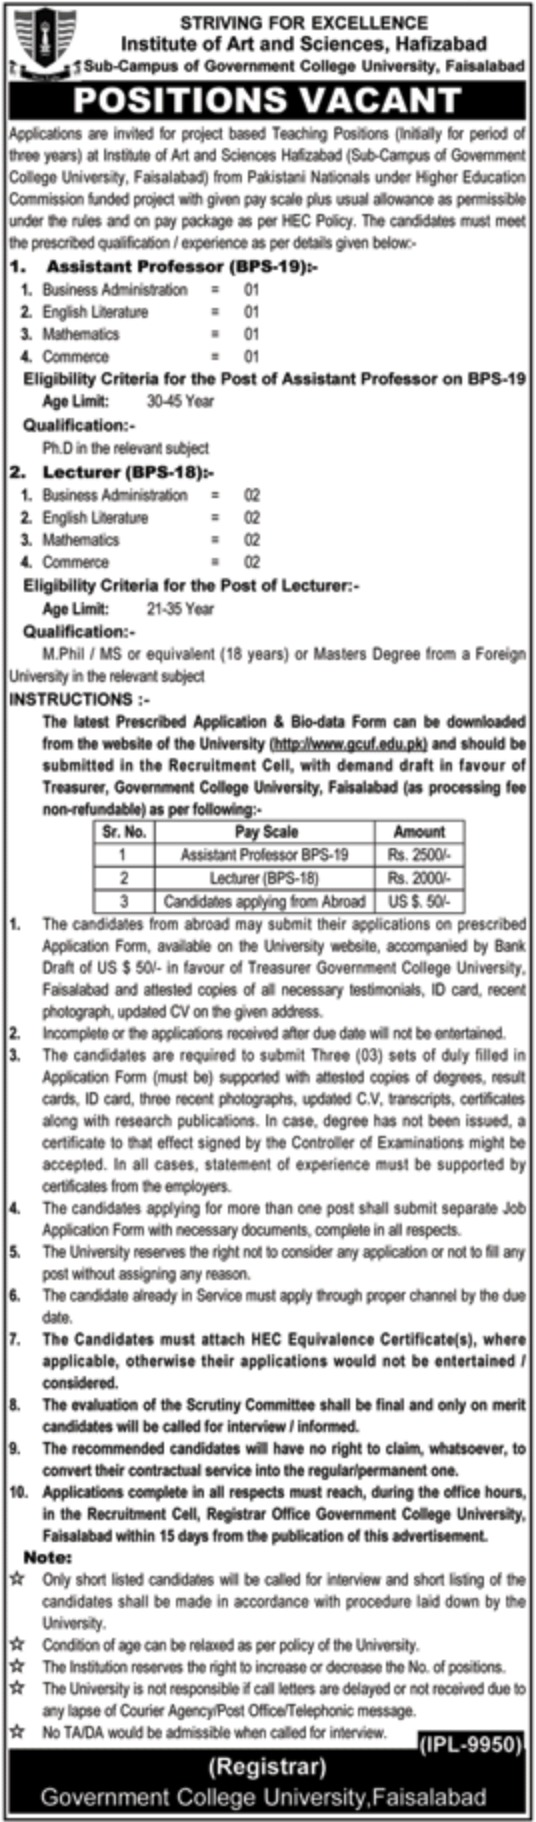 Institute of Art & Sciences Hafizabad Jobs 2019